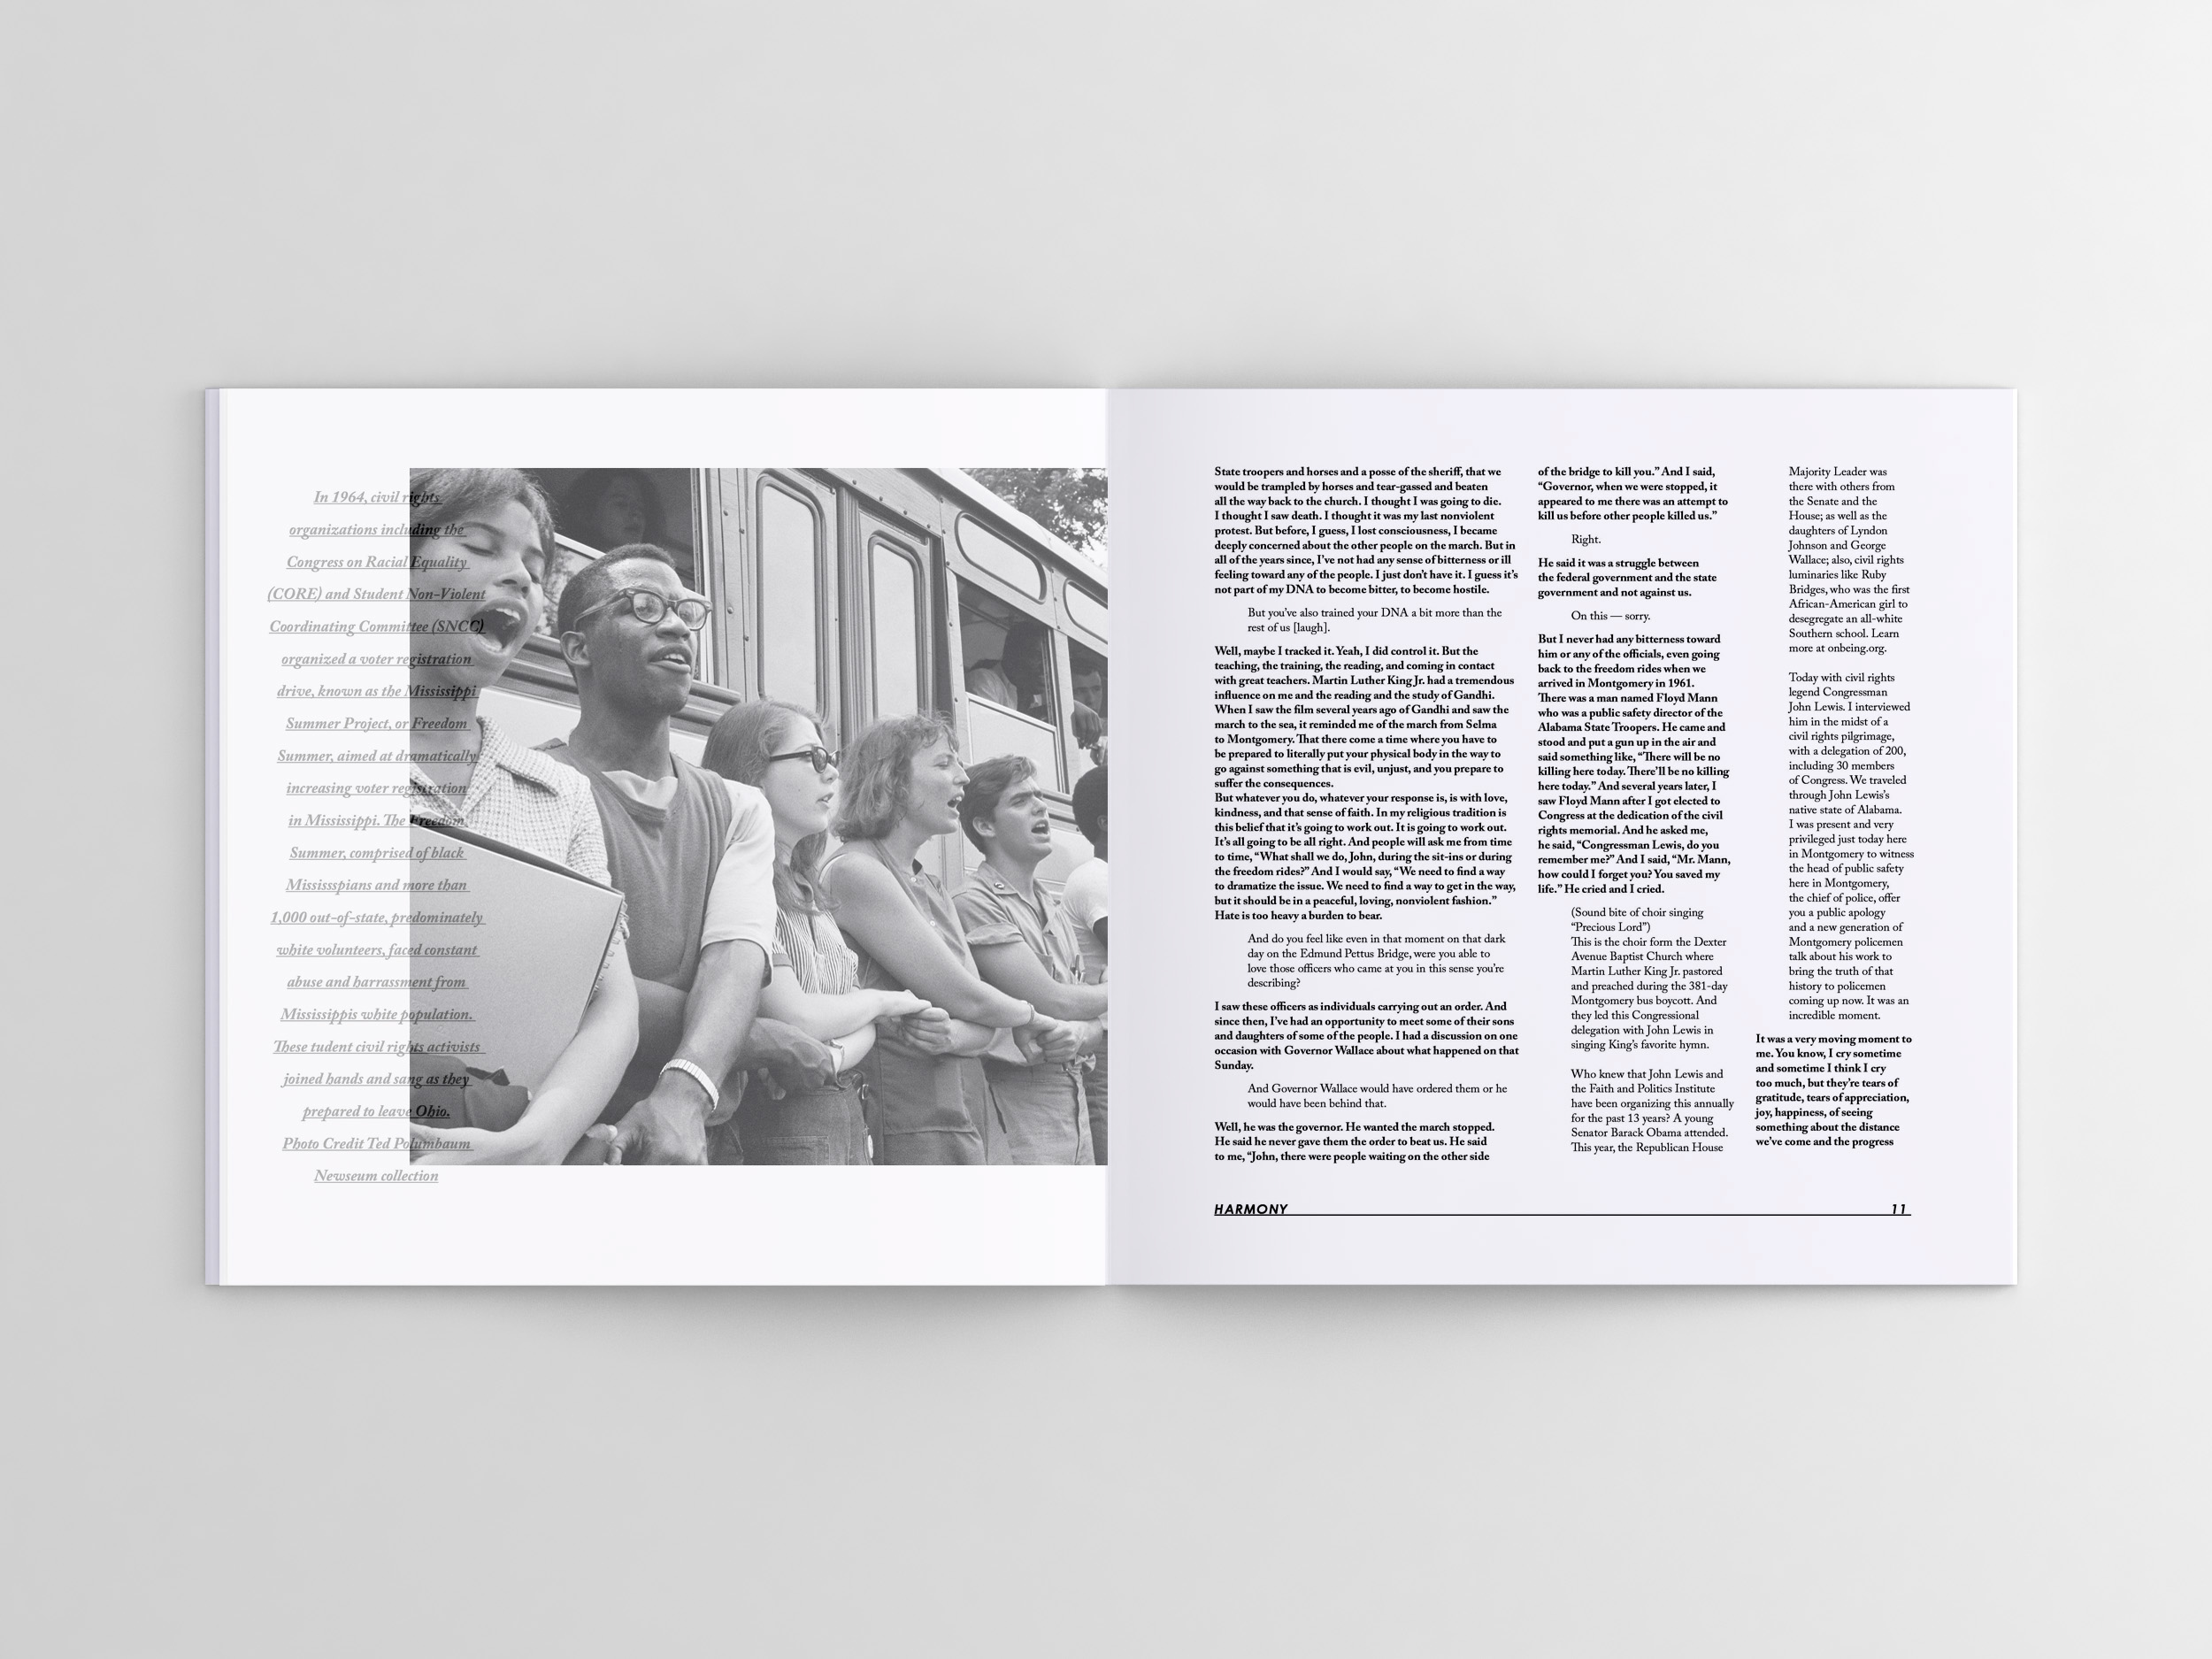 jessamyn rieke this catalog is designed a typography focus and features different essays and speeches on nonviolence